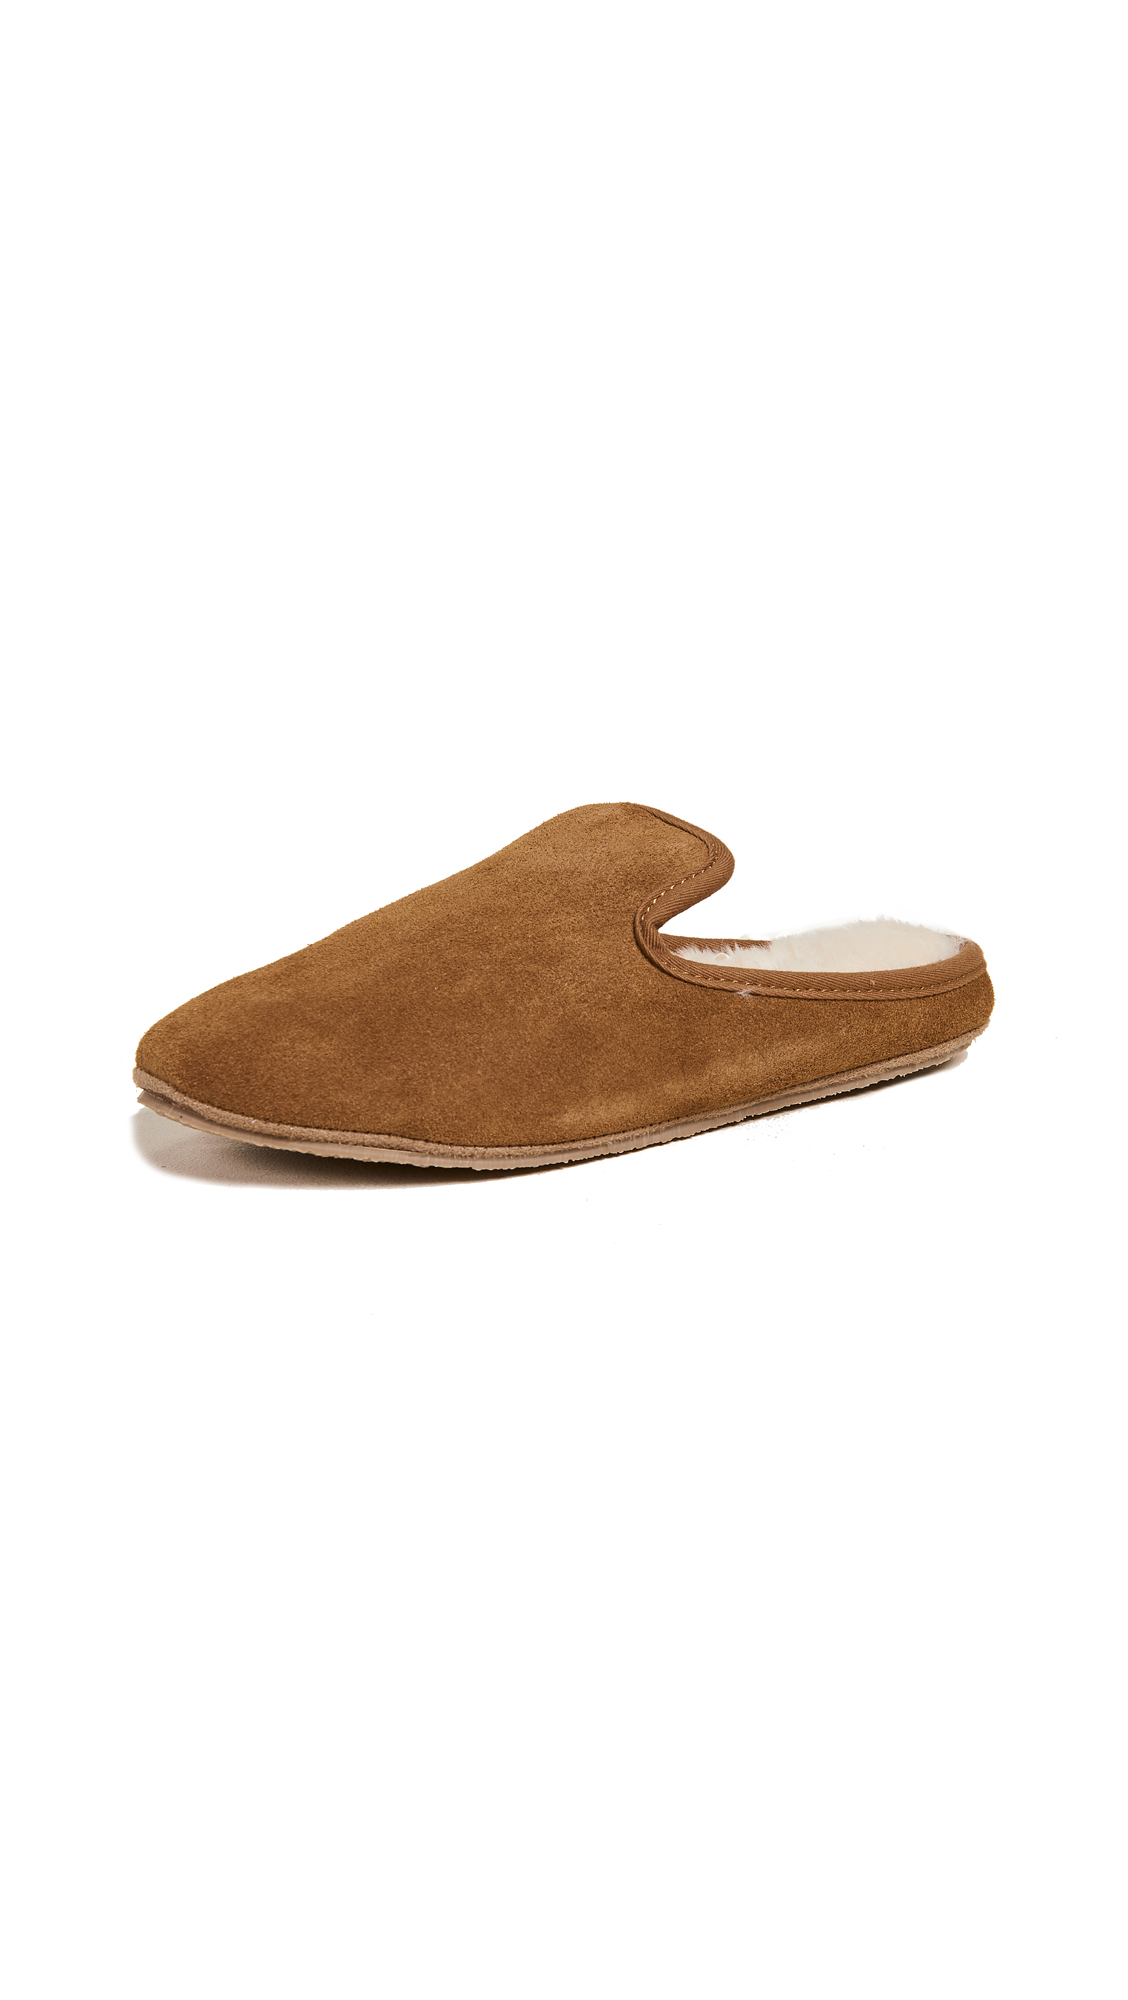 Madewell Scuff Loafer Slippers - Timber Beam